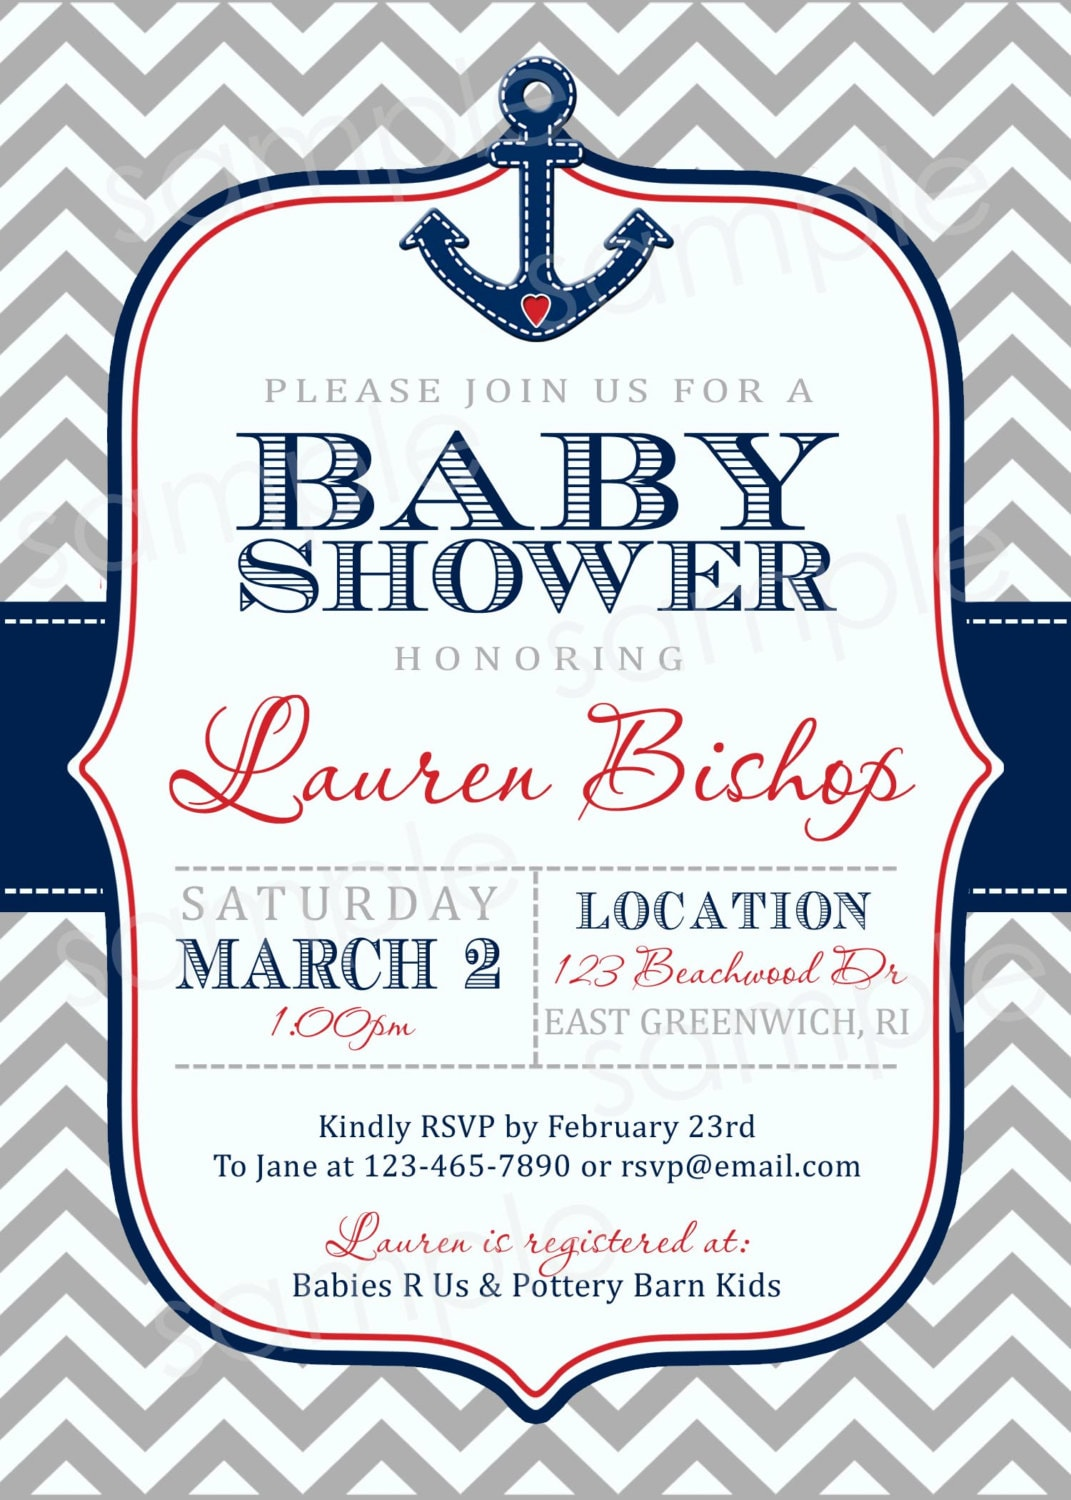 Order Baby Shower Invitations Online with great invitation design